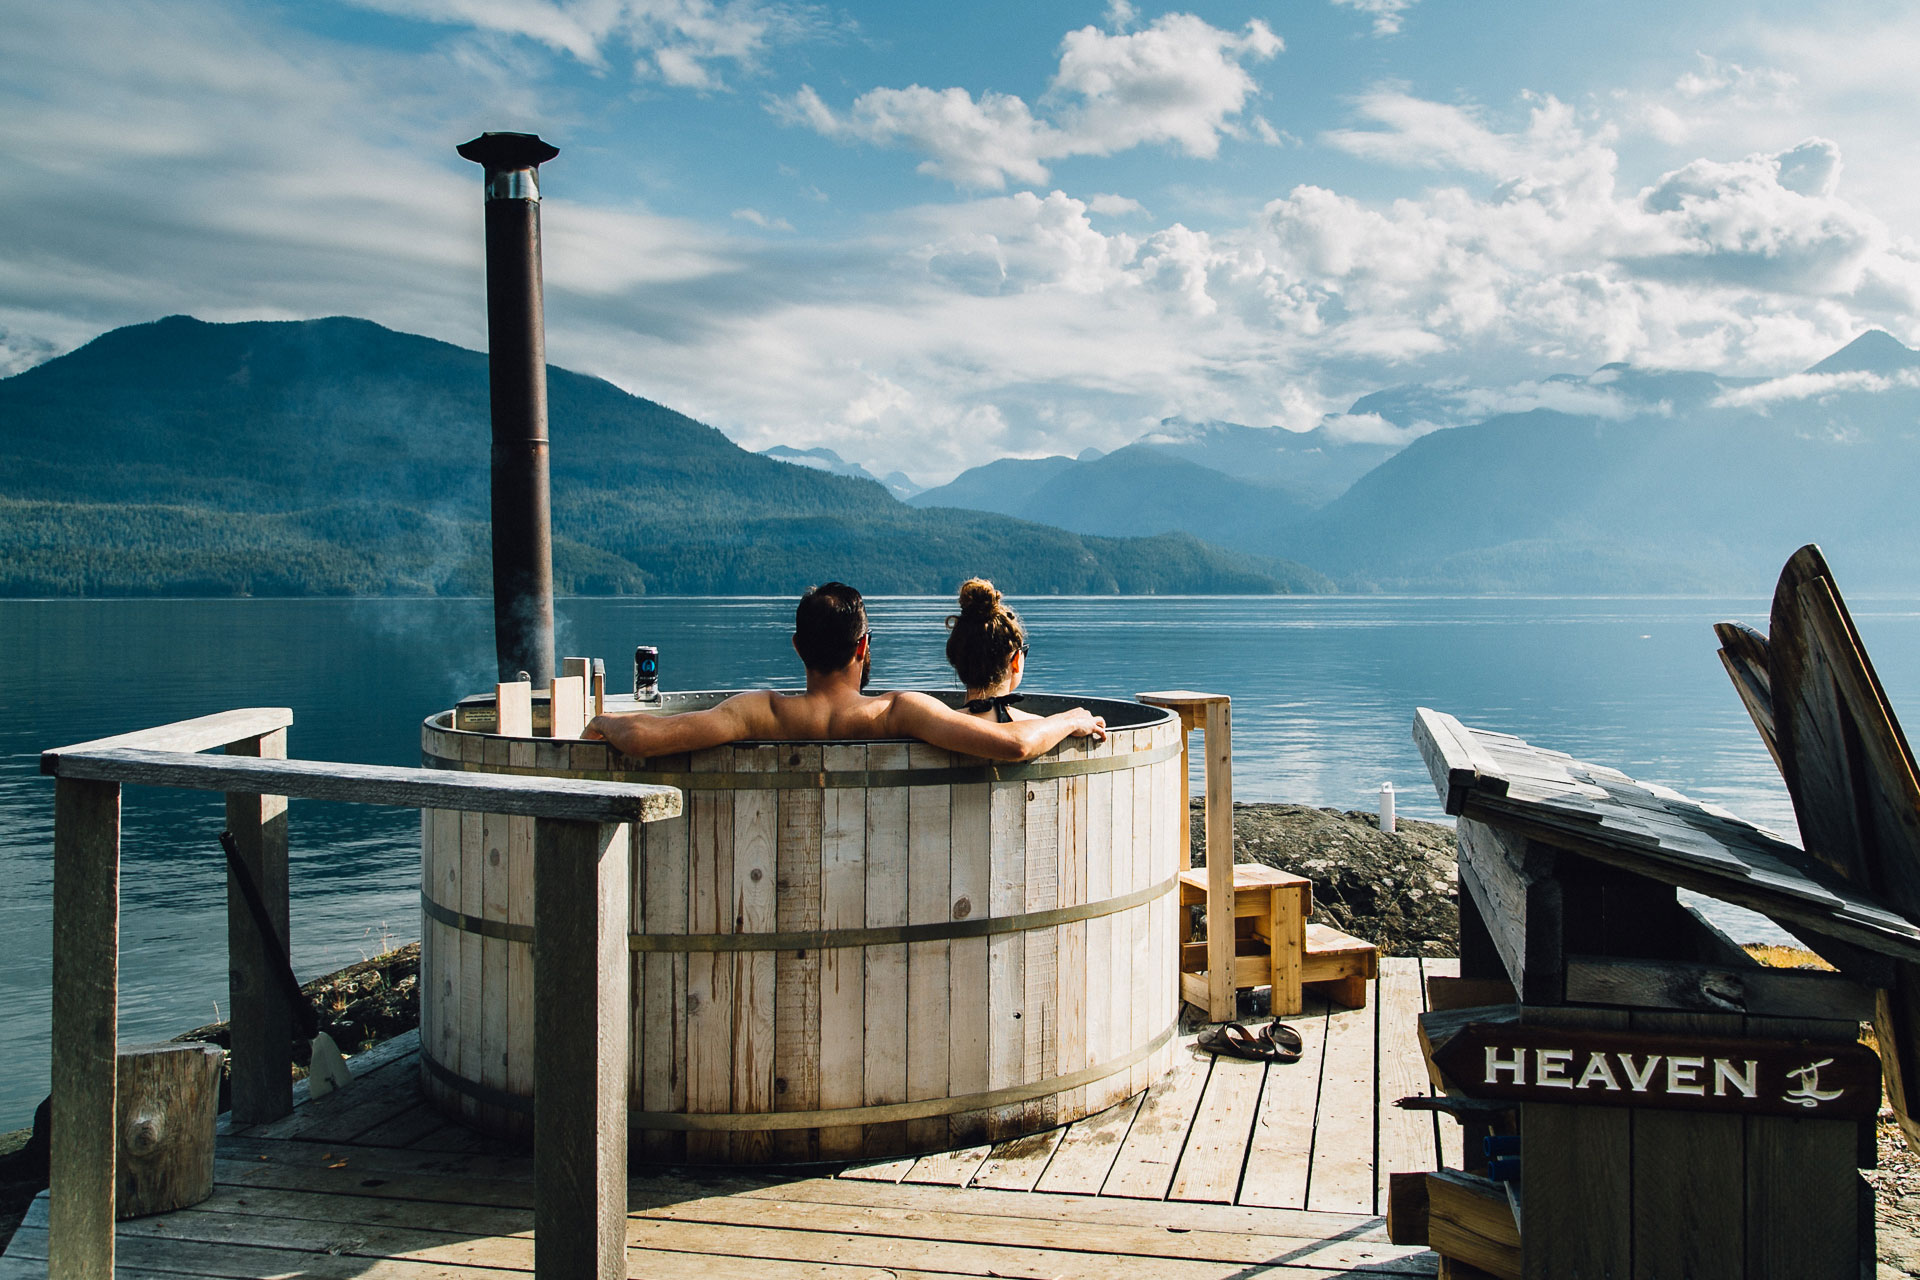 relax in a hot tub overlooking the ocean, restore and recharge with regenerative travel